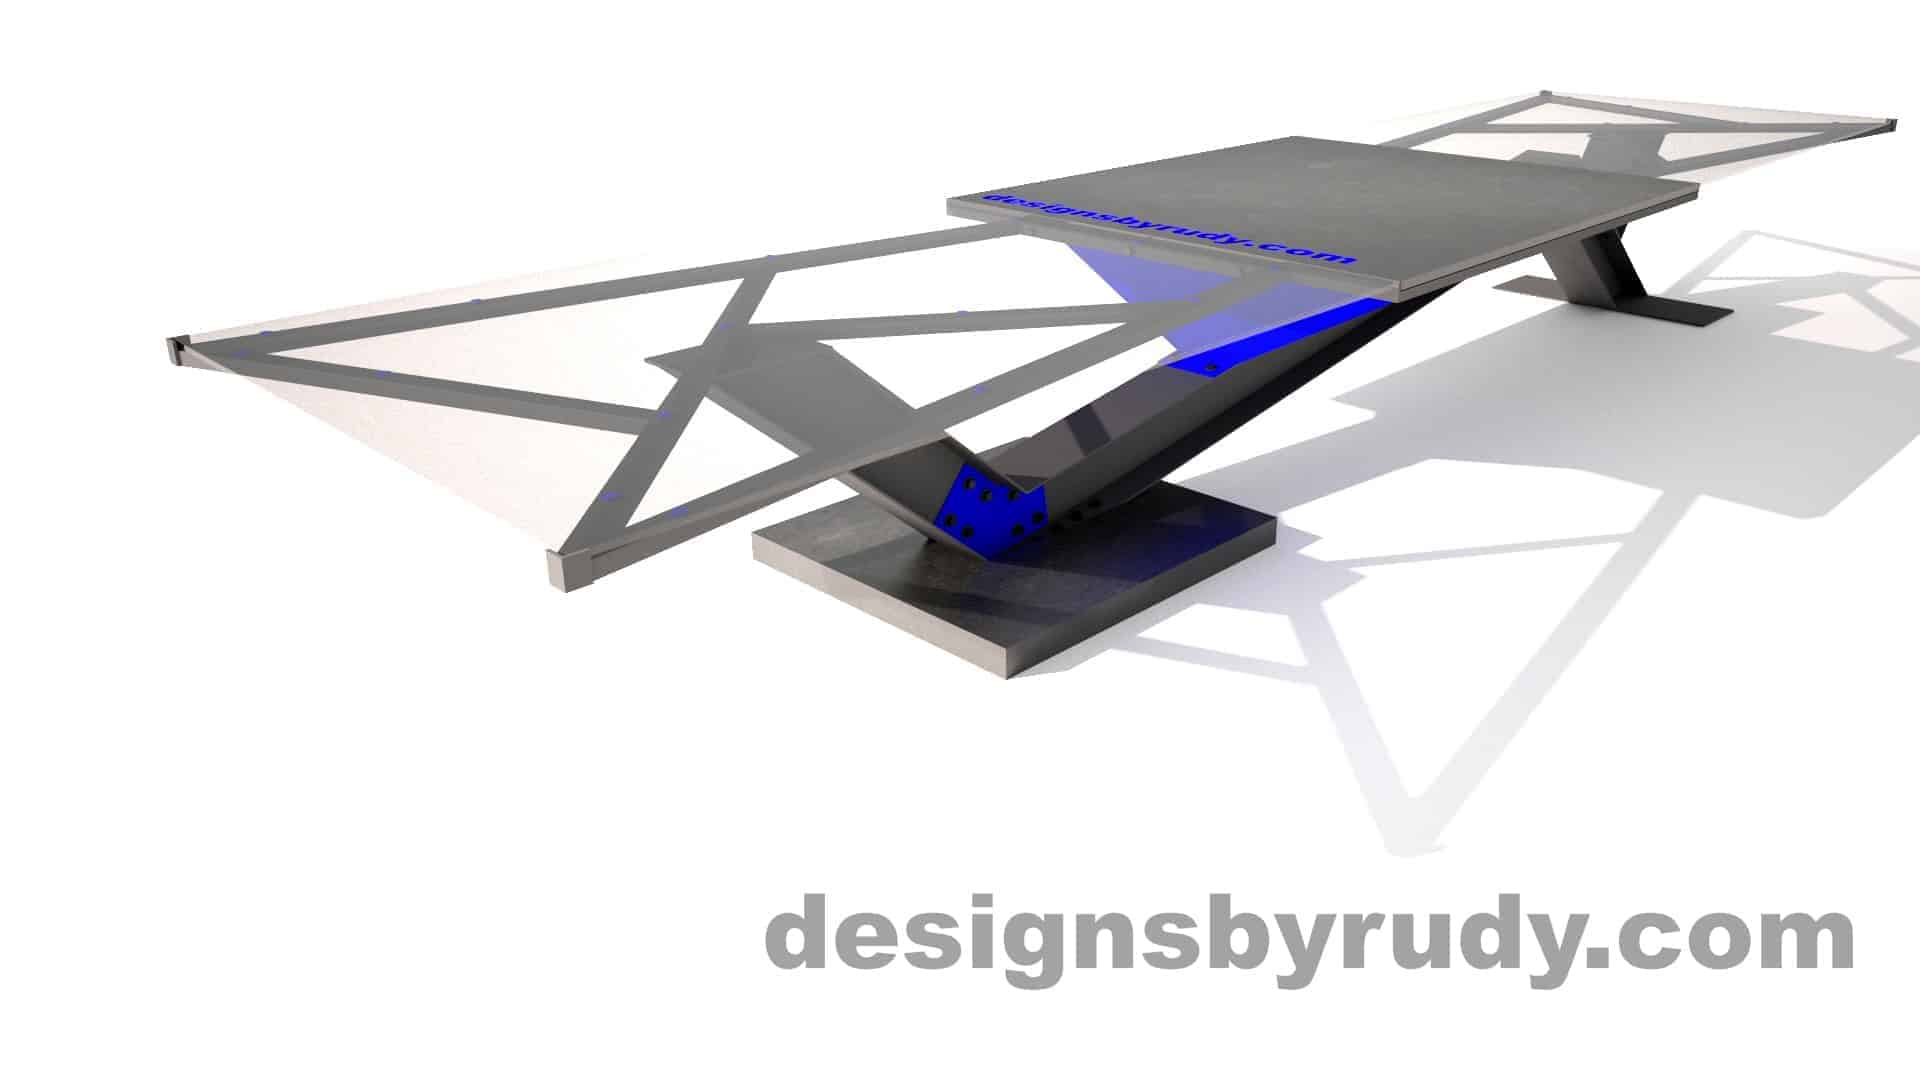 Concrete, steel, glass conference table modern design, full angle view side 2